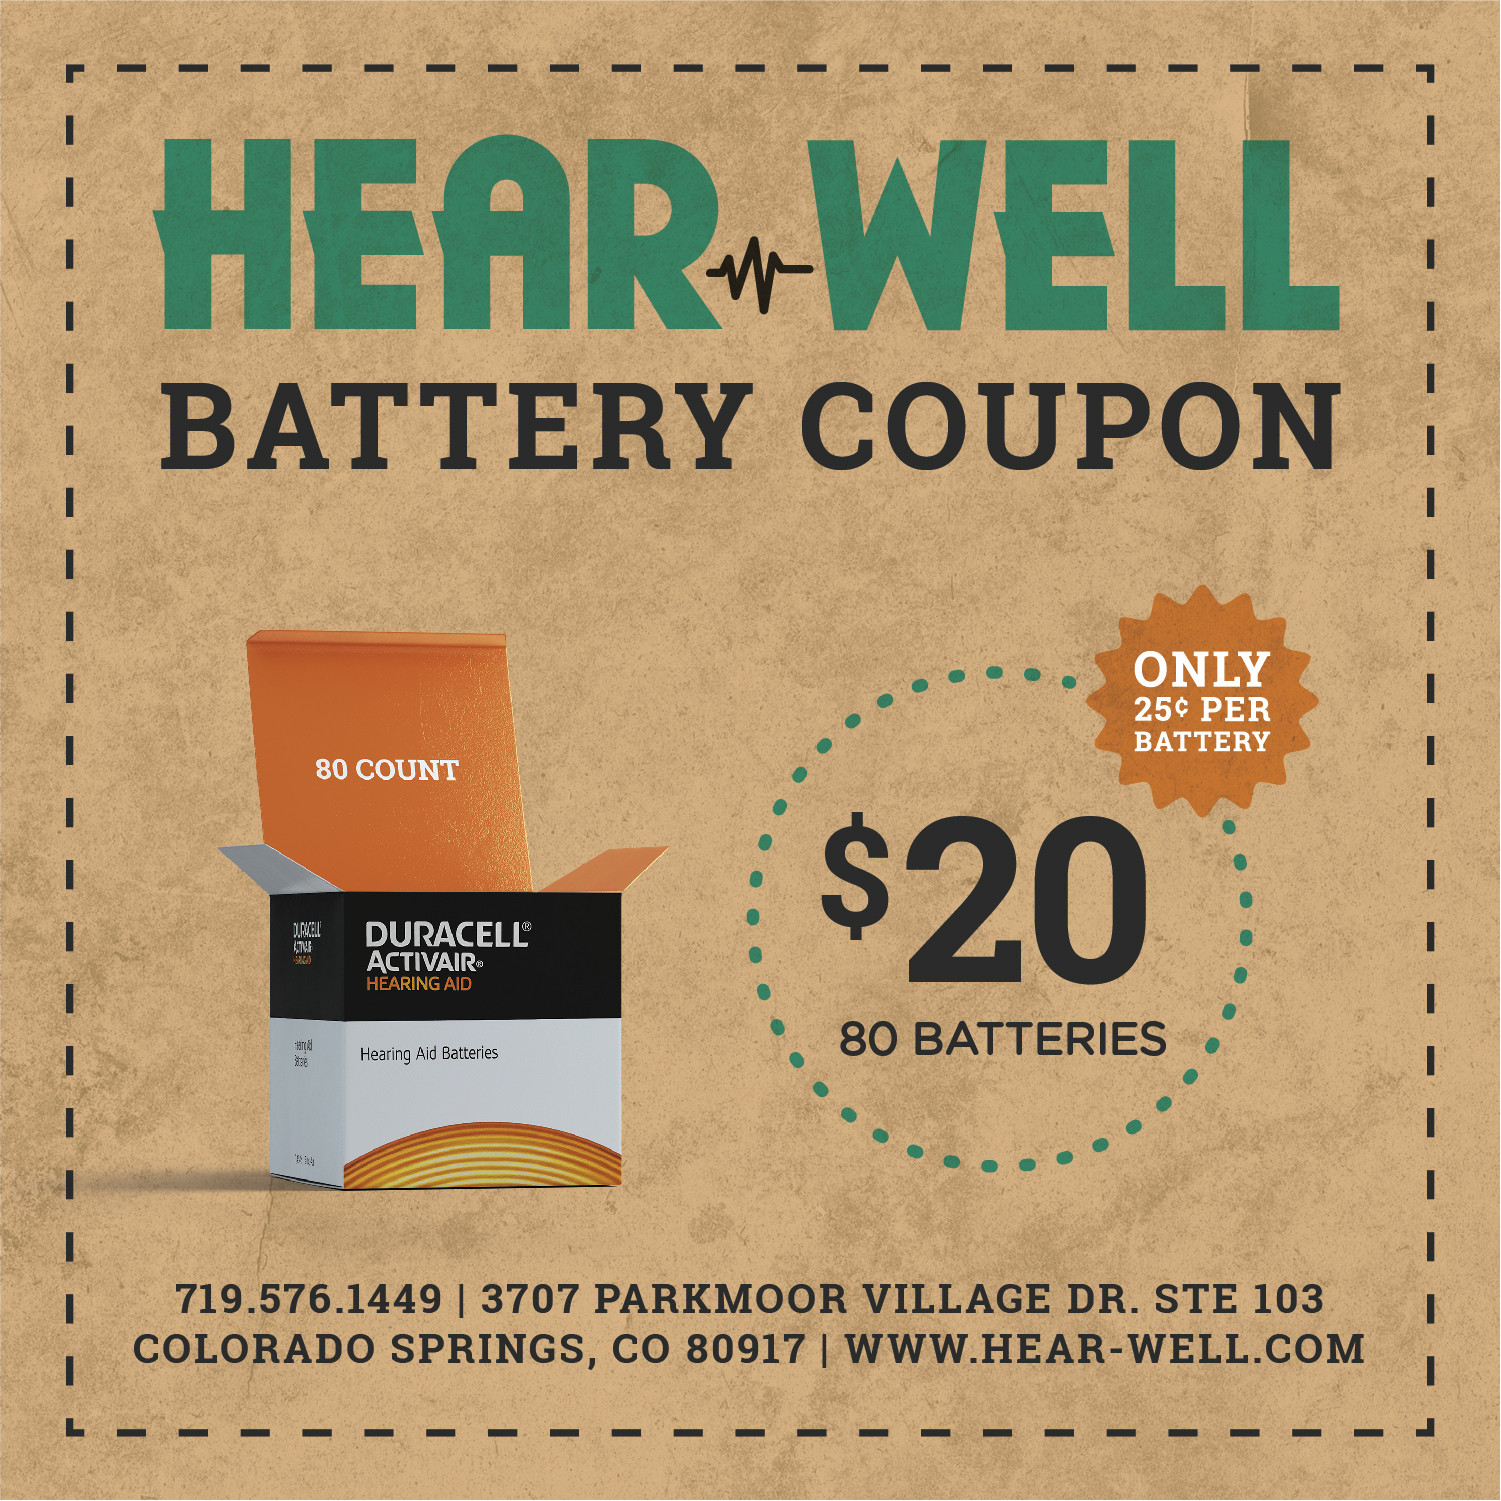 Hear-Well Battery Coupon